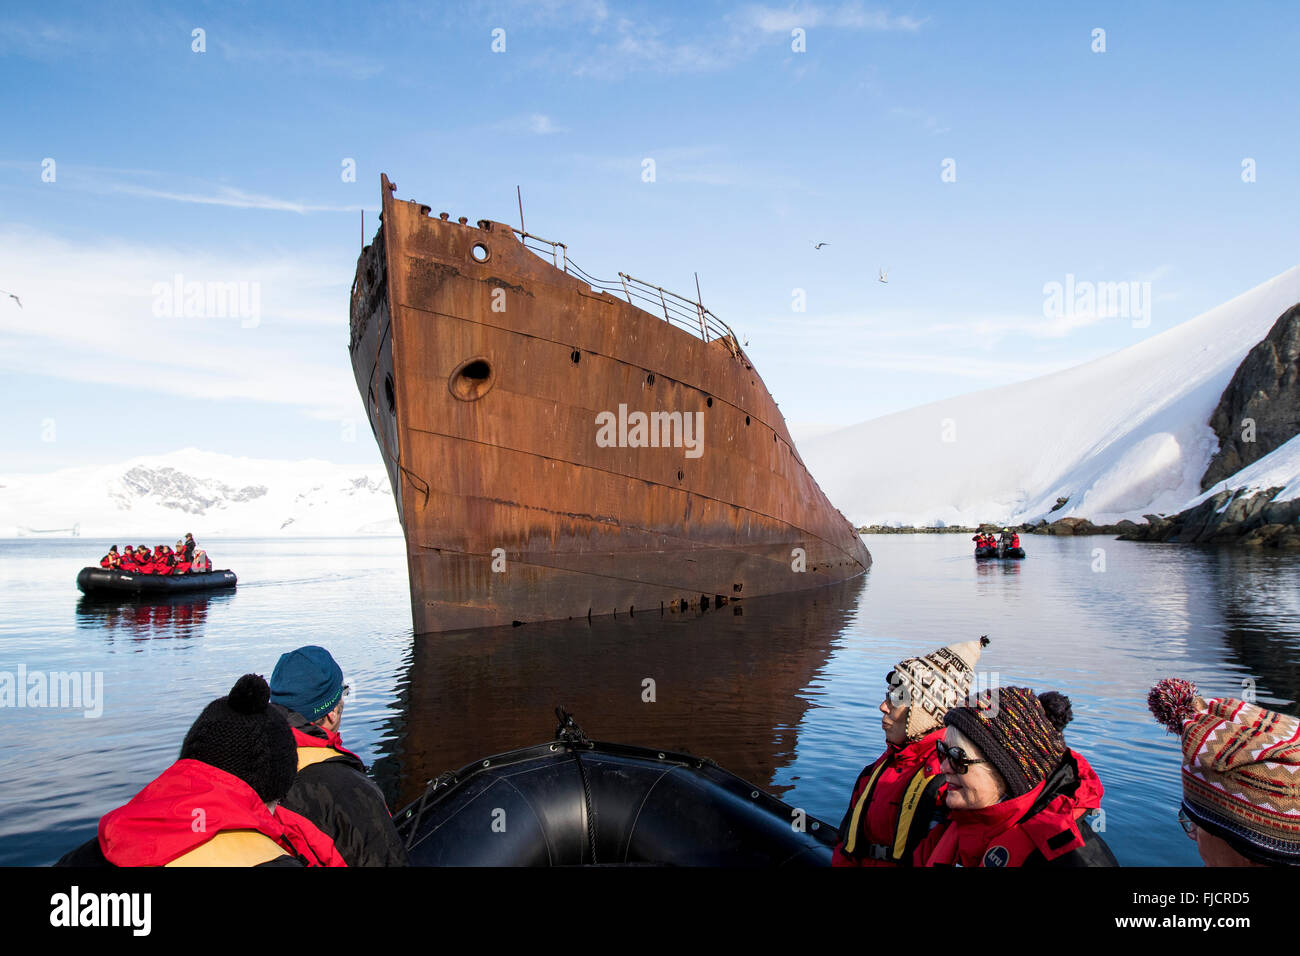 Antarctica tourism with cruise ship passengers in zodiac boat viewing old and historic whaling ship. - Stock Image